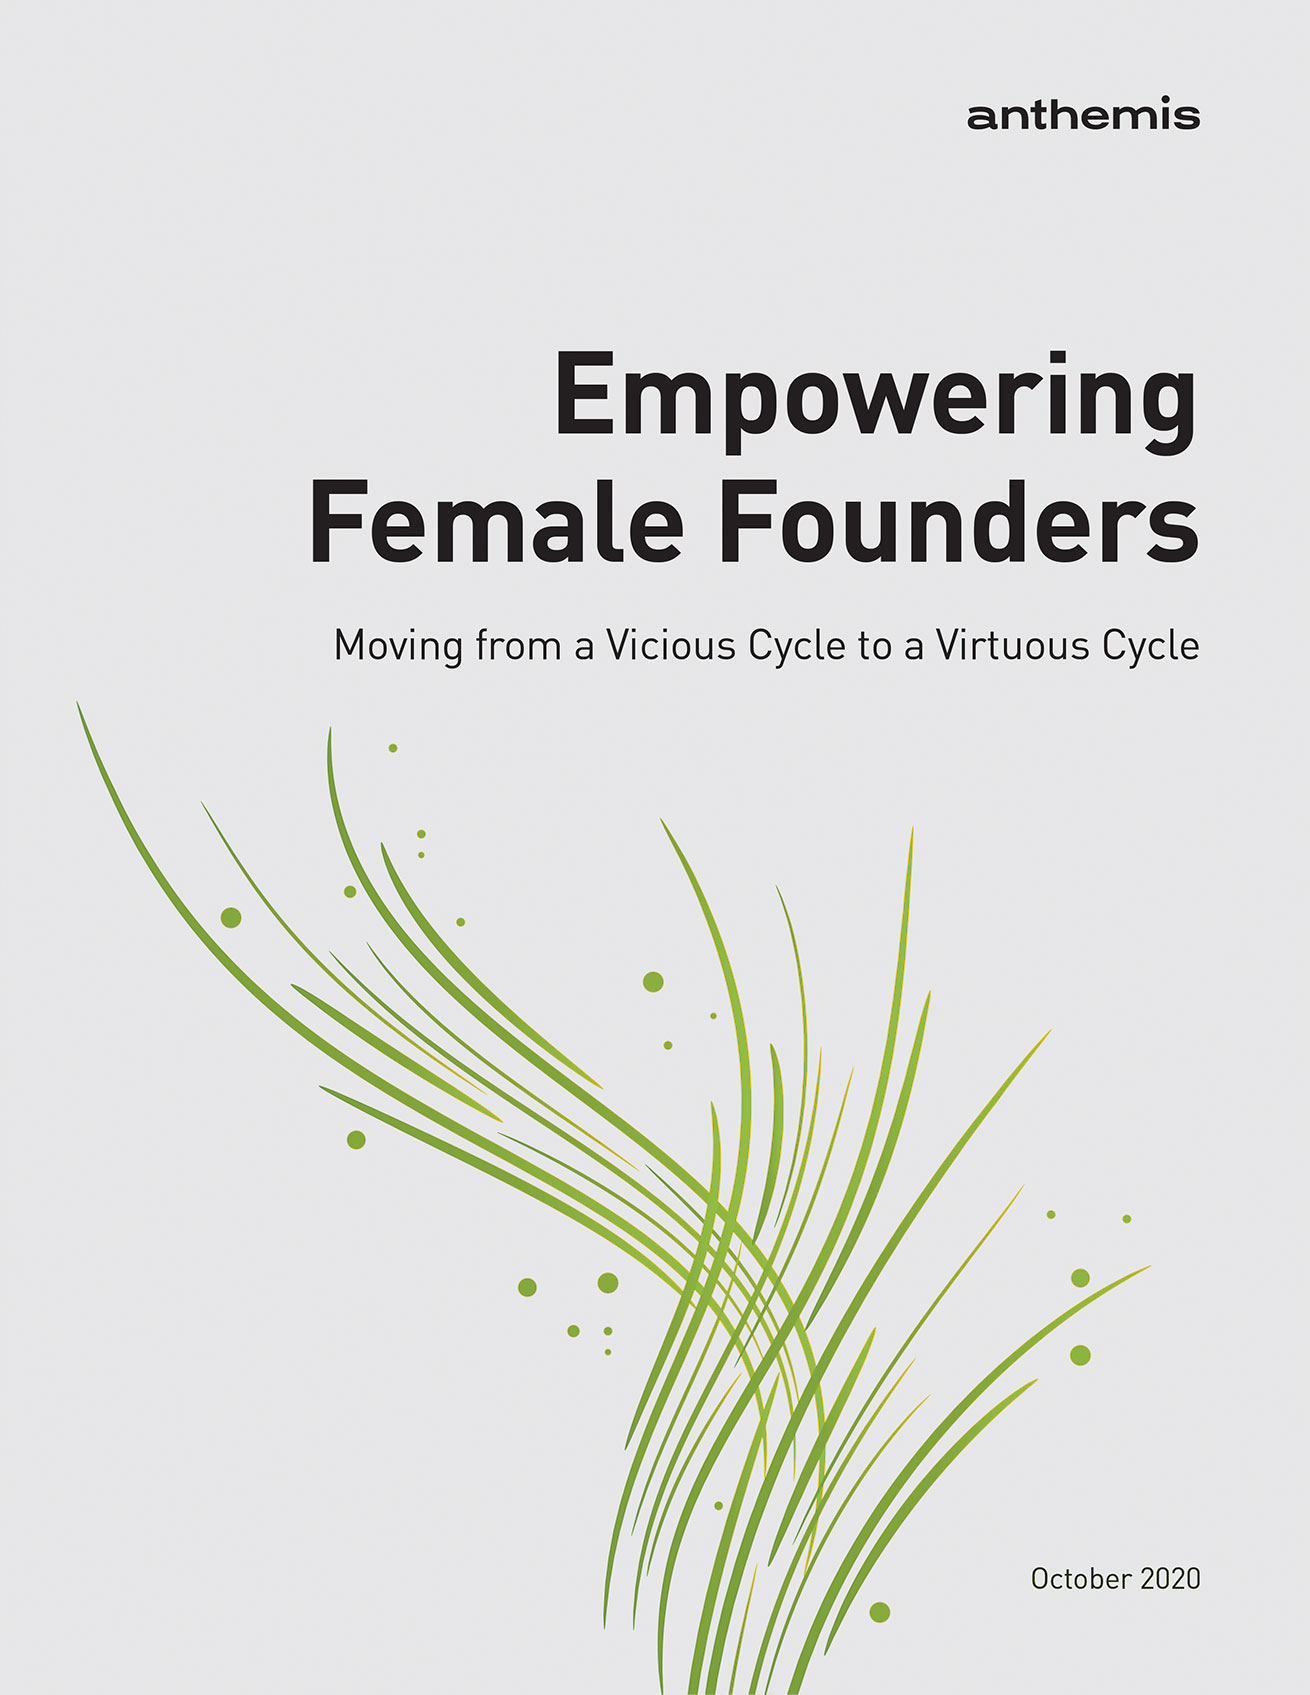 Anthemis-Empowering Female Founders (Cover)